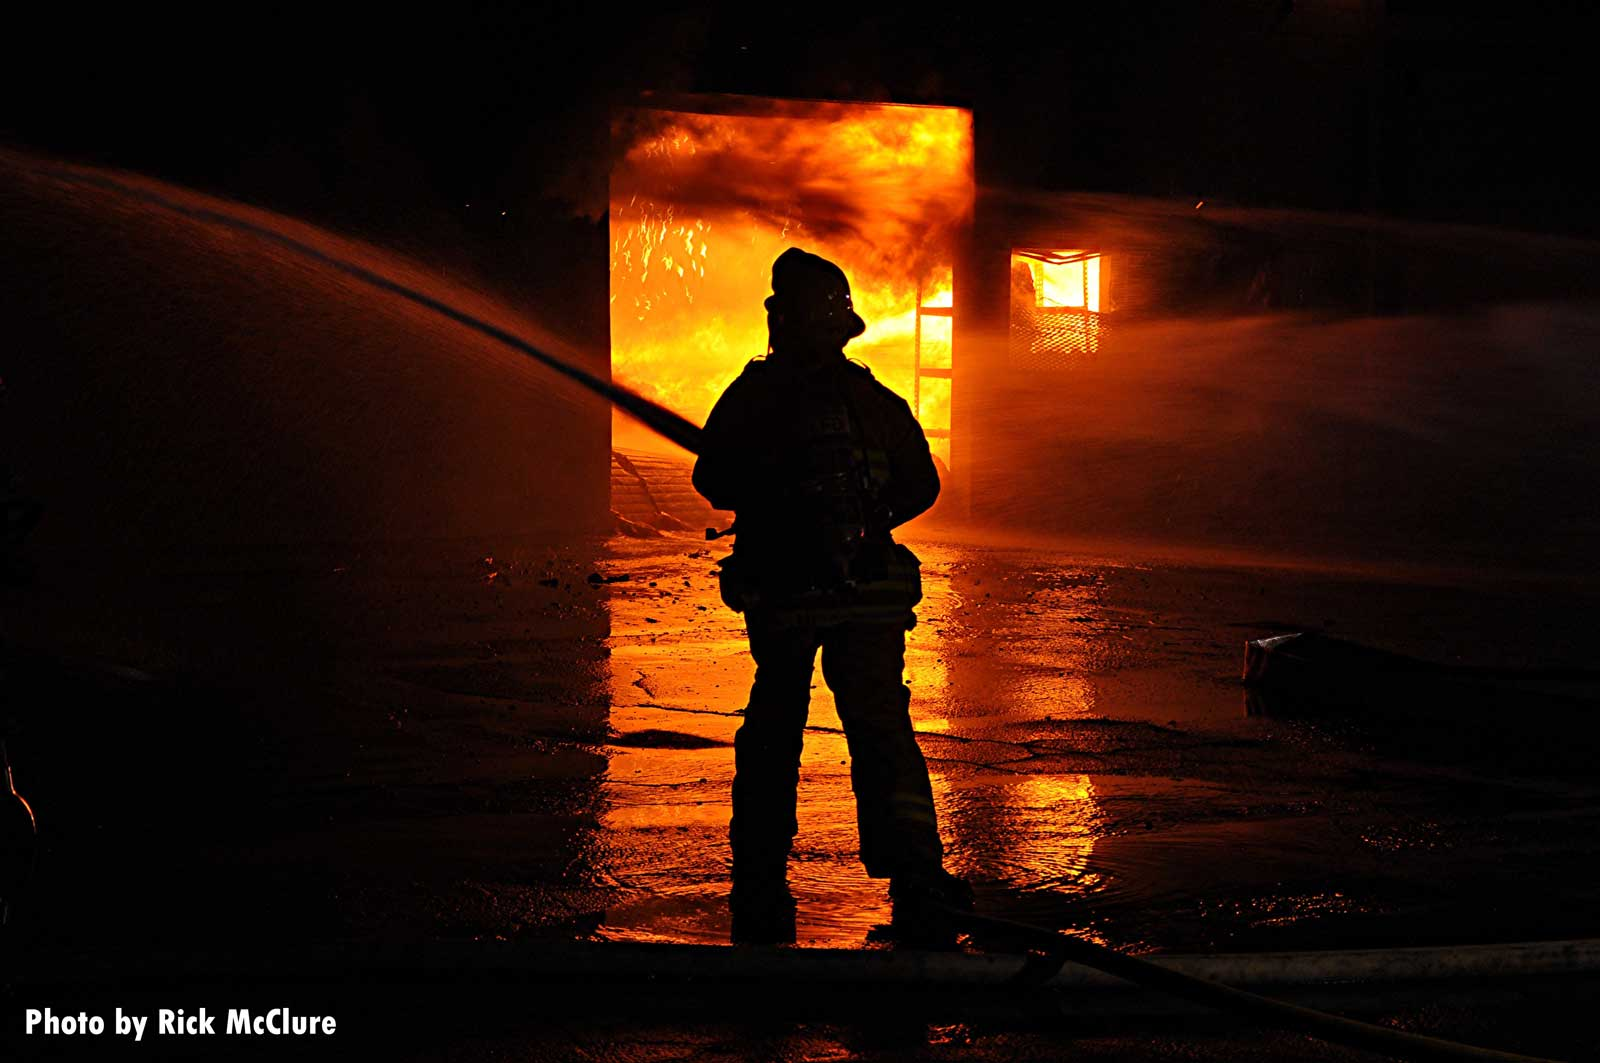 Firefighter with a hoseline framed by flames